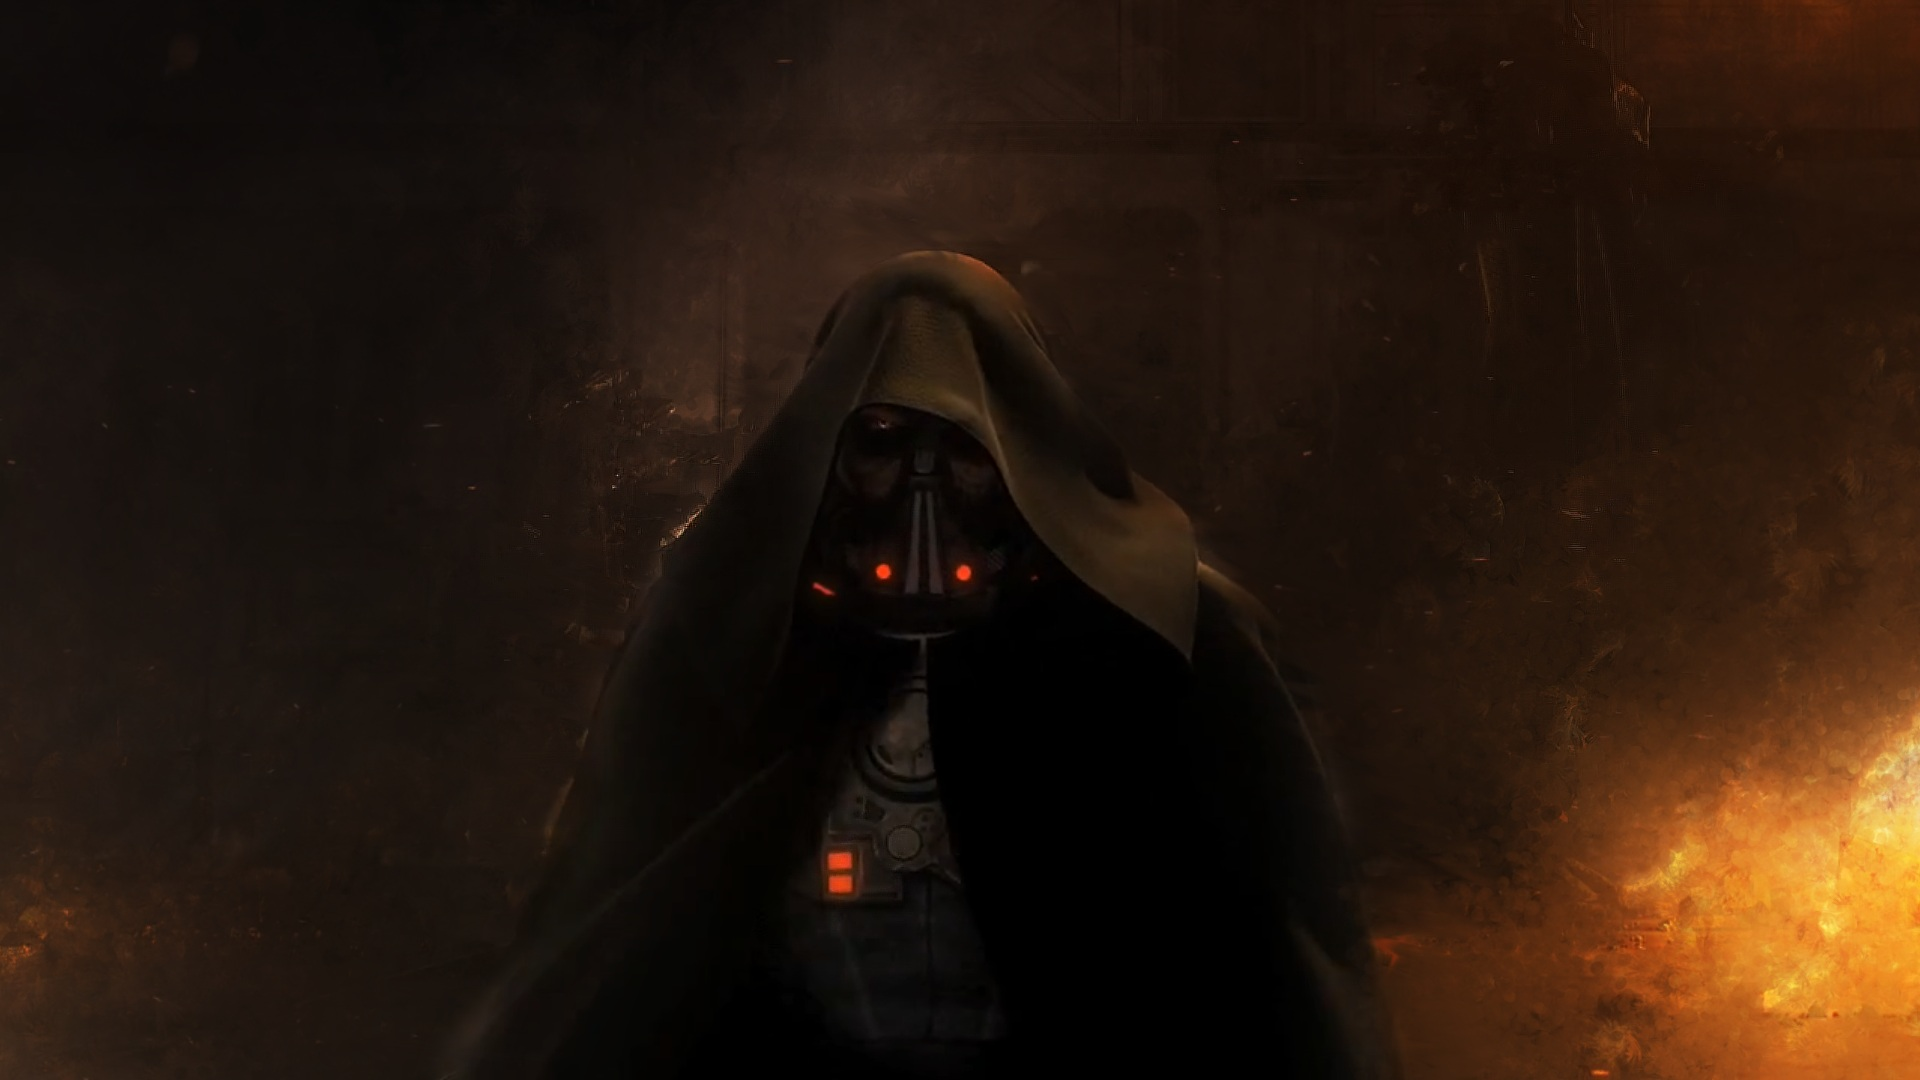 Star Wars Wallpaper 1920x1080 Star Wars Video Games Sith 1920x1080